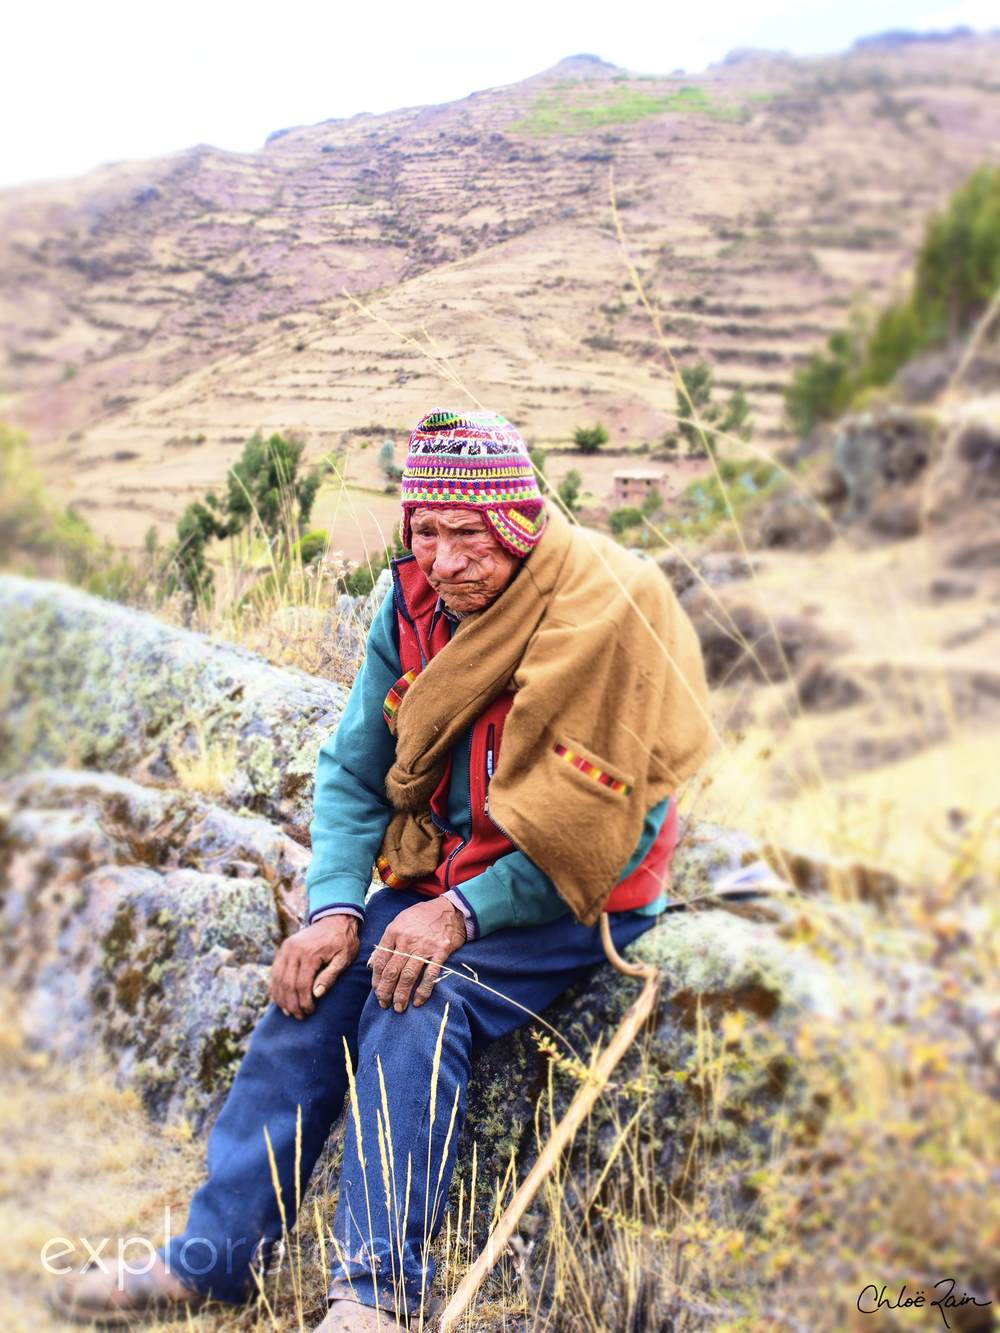 """Maestro Jesus, 80 year old Atamesayok Shaman, from Amaru. He was """"called"""" to his work by being struck by lightening 3 times in his youth. He does healing ceremonies for people from all over the world, and brought us to the mountaintop where he burns the offerings for their prayers."""